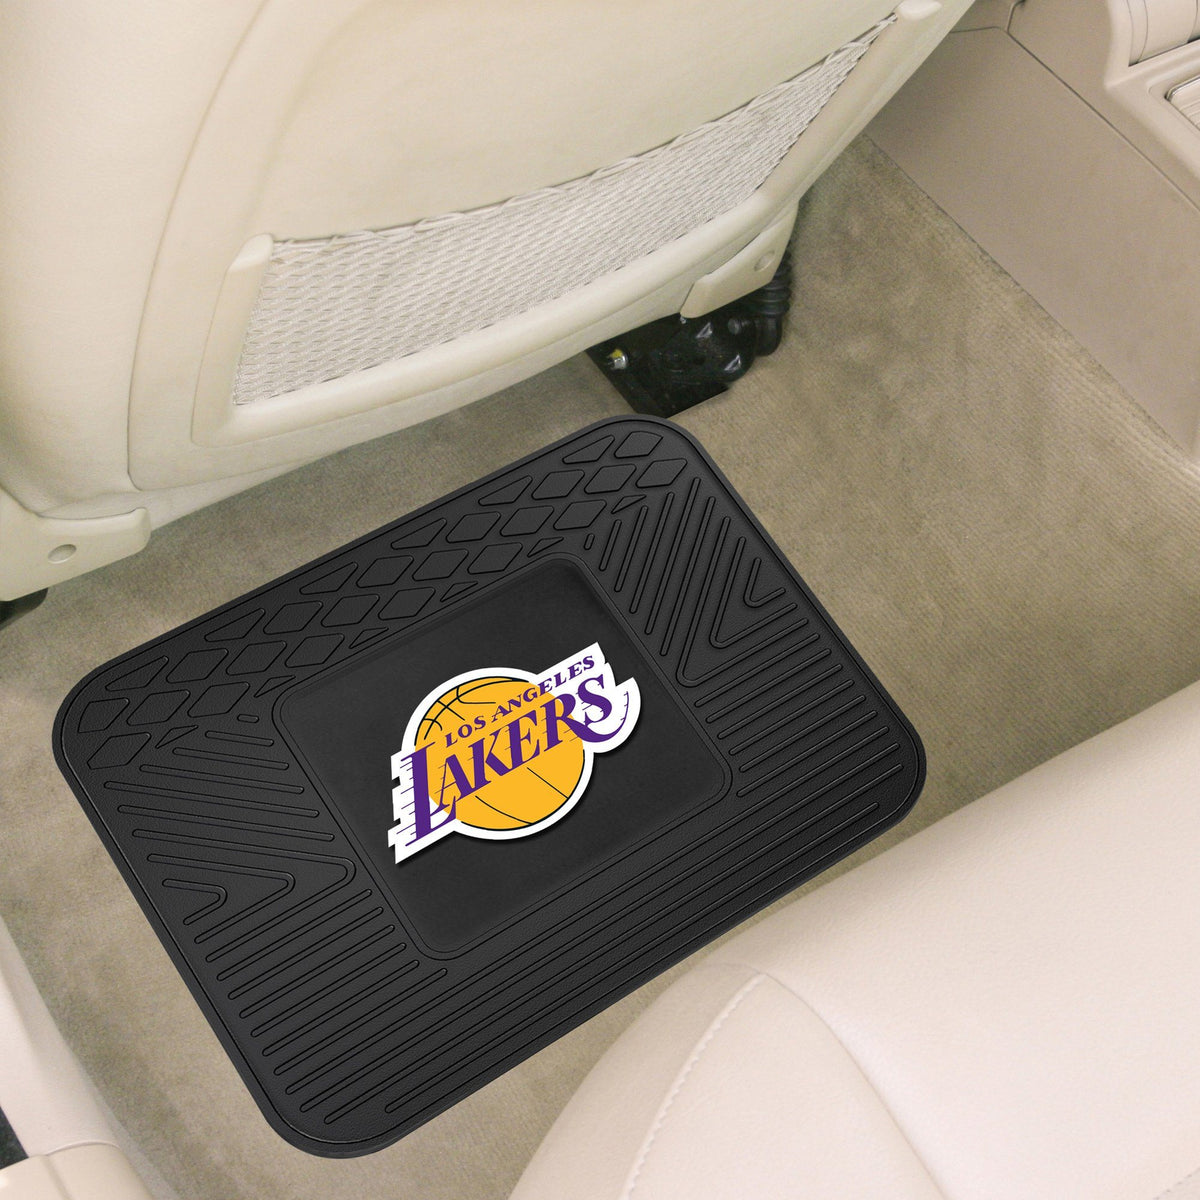 NBA - Utility Mat NBA Mats, Rear Car Mats, Utility Mat, NBA, Auto Fan Mats Los Angeles Lakers